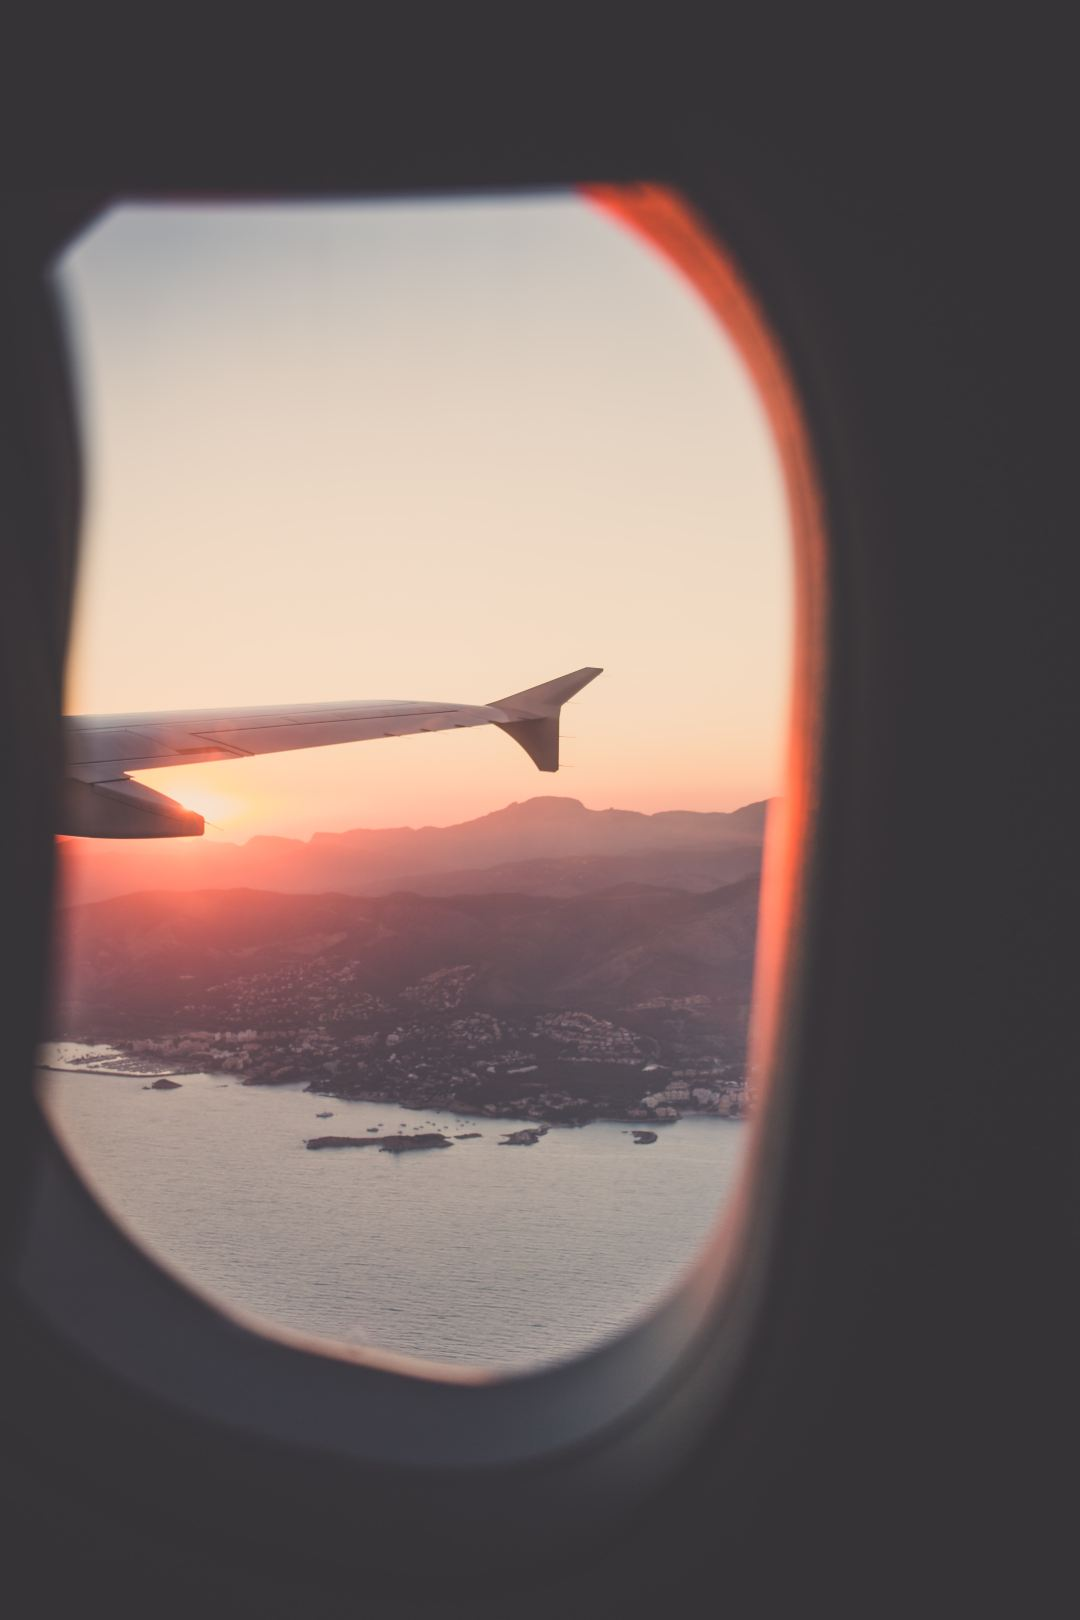 7 Things You Must Not Bring on a Plane to Have a Hassle-Free Travel